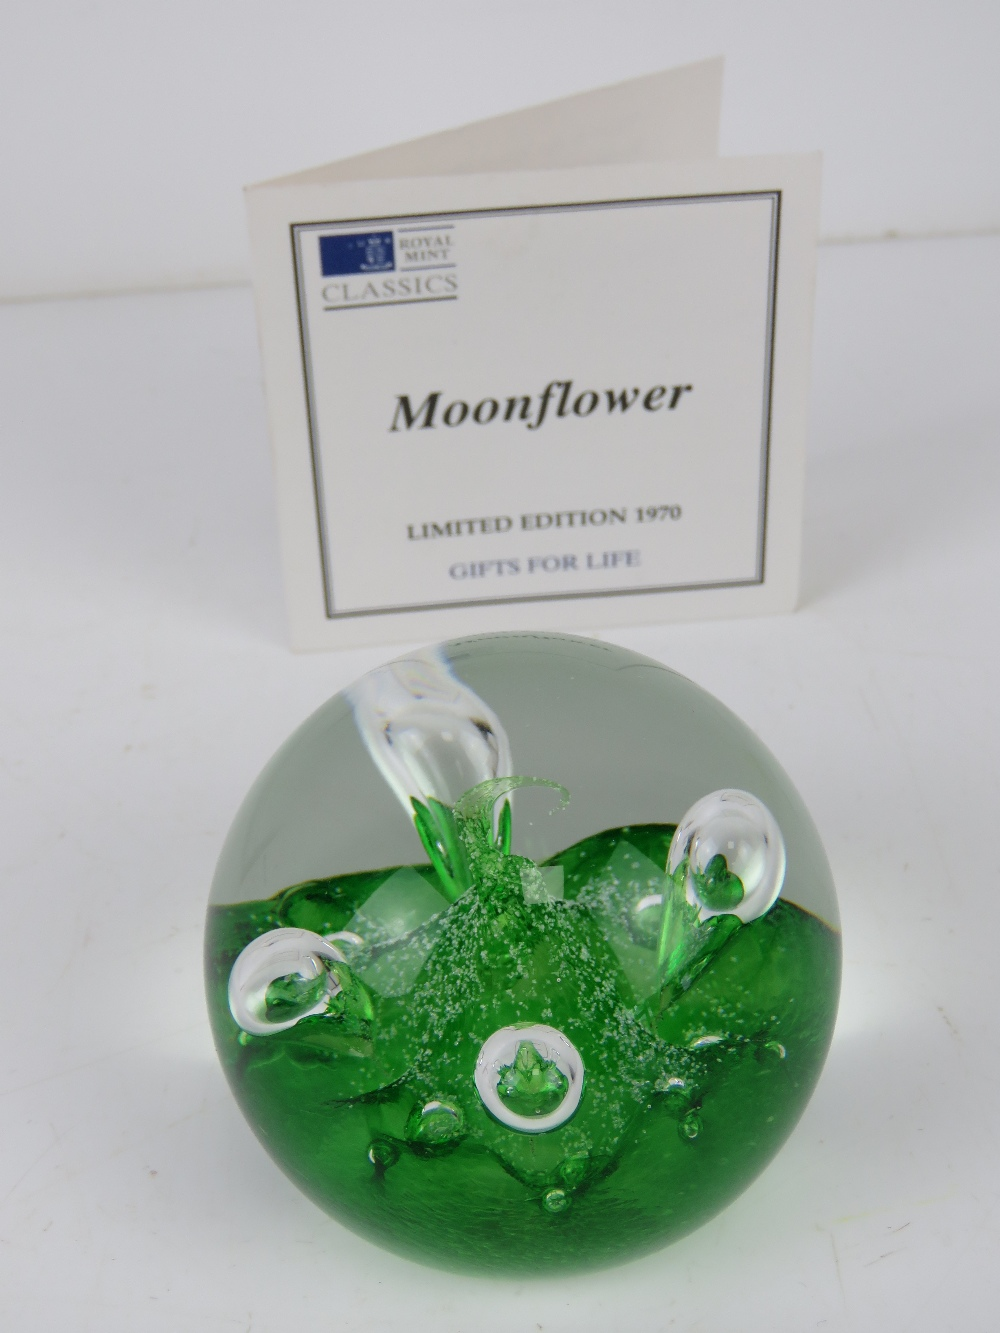 A set of six Royal Mint Classics limited edition Caithness glass paperweights, - Image 4 of 9